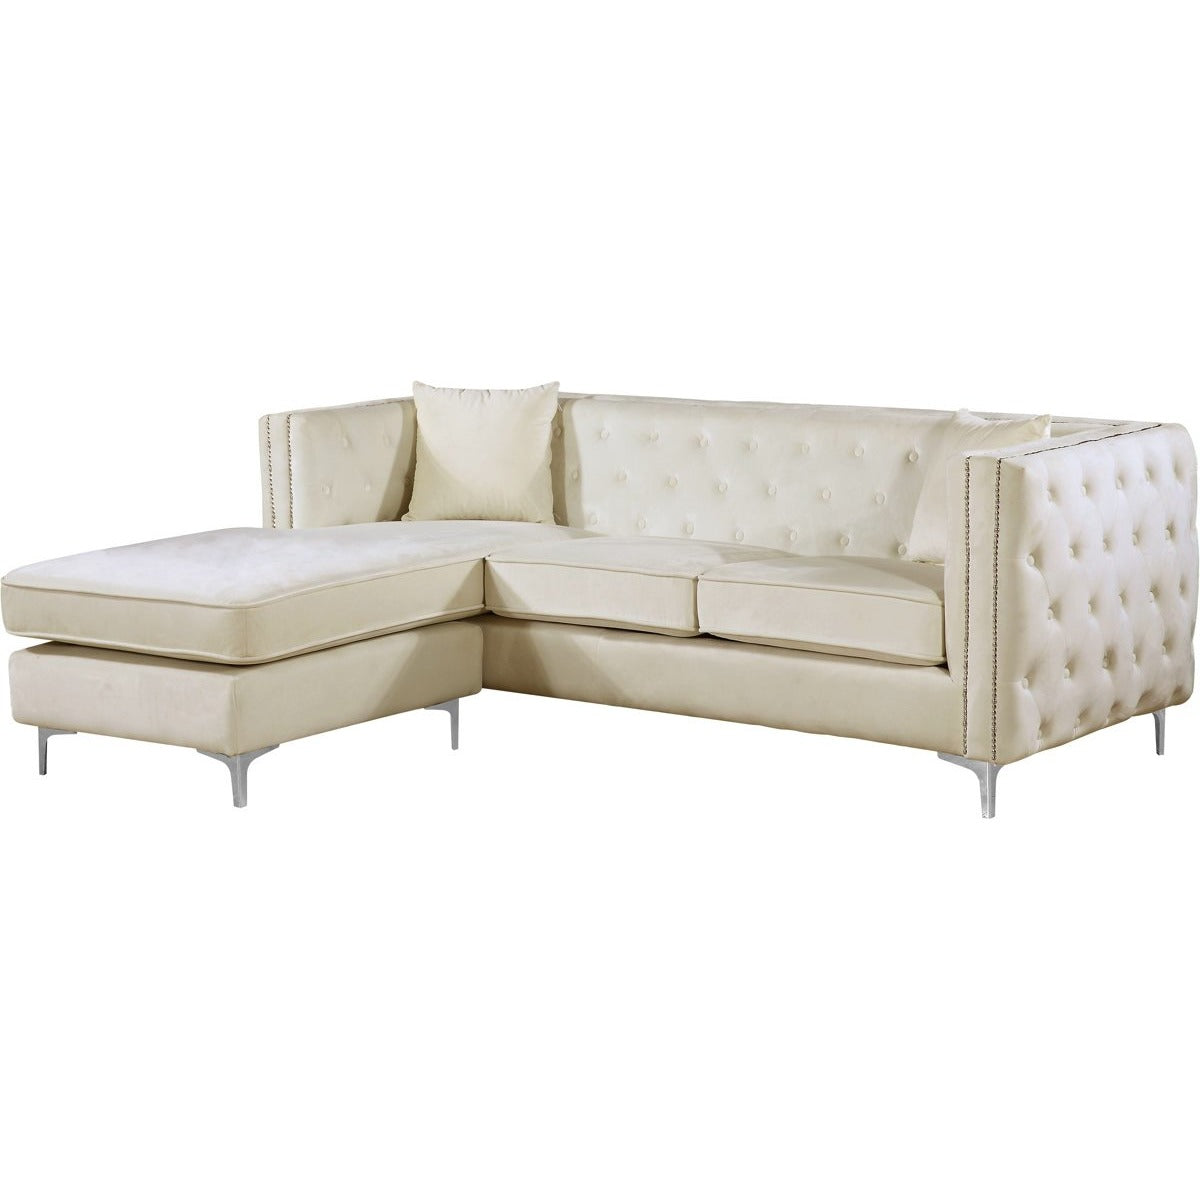 Meridian Furniture Jesse Cream Velvet 2pc. Reversible SectionalMeridian Furniture - 2pc. Reversible Sectional - Minimal And Modern - 1